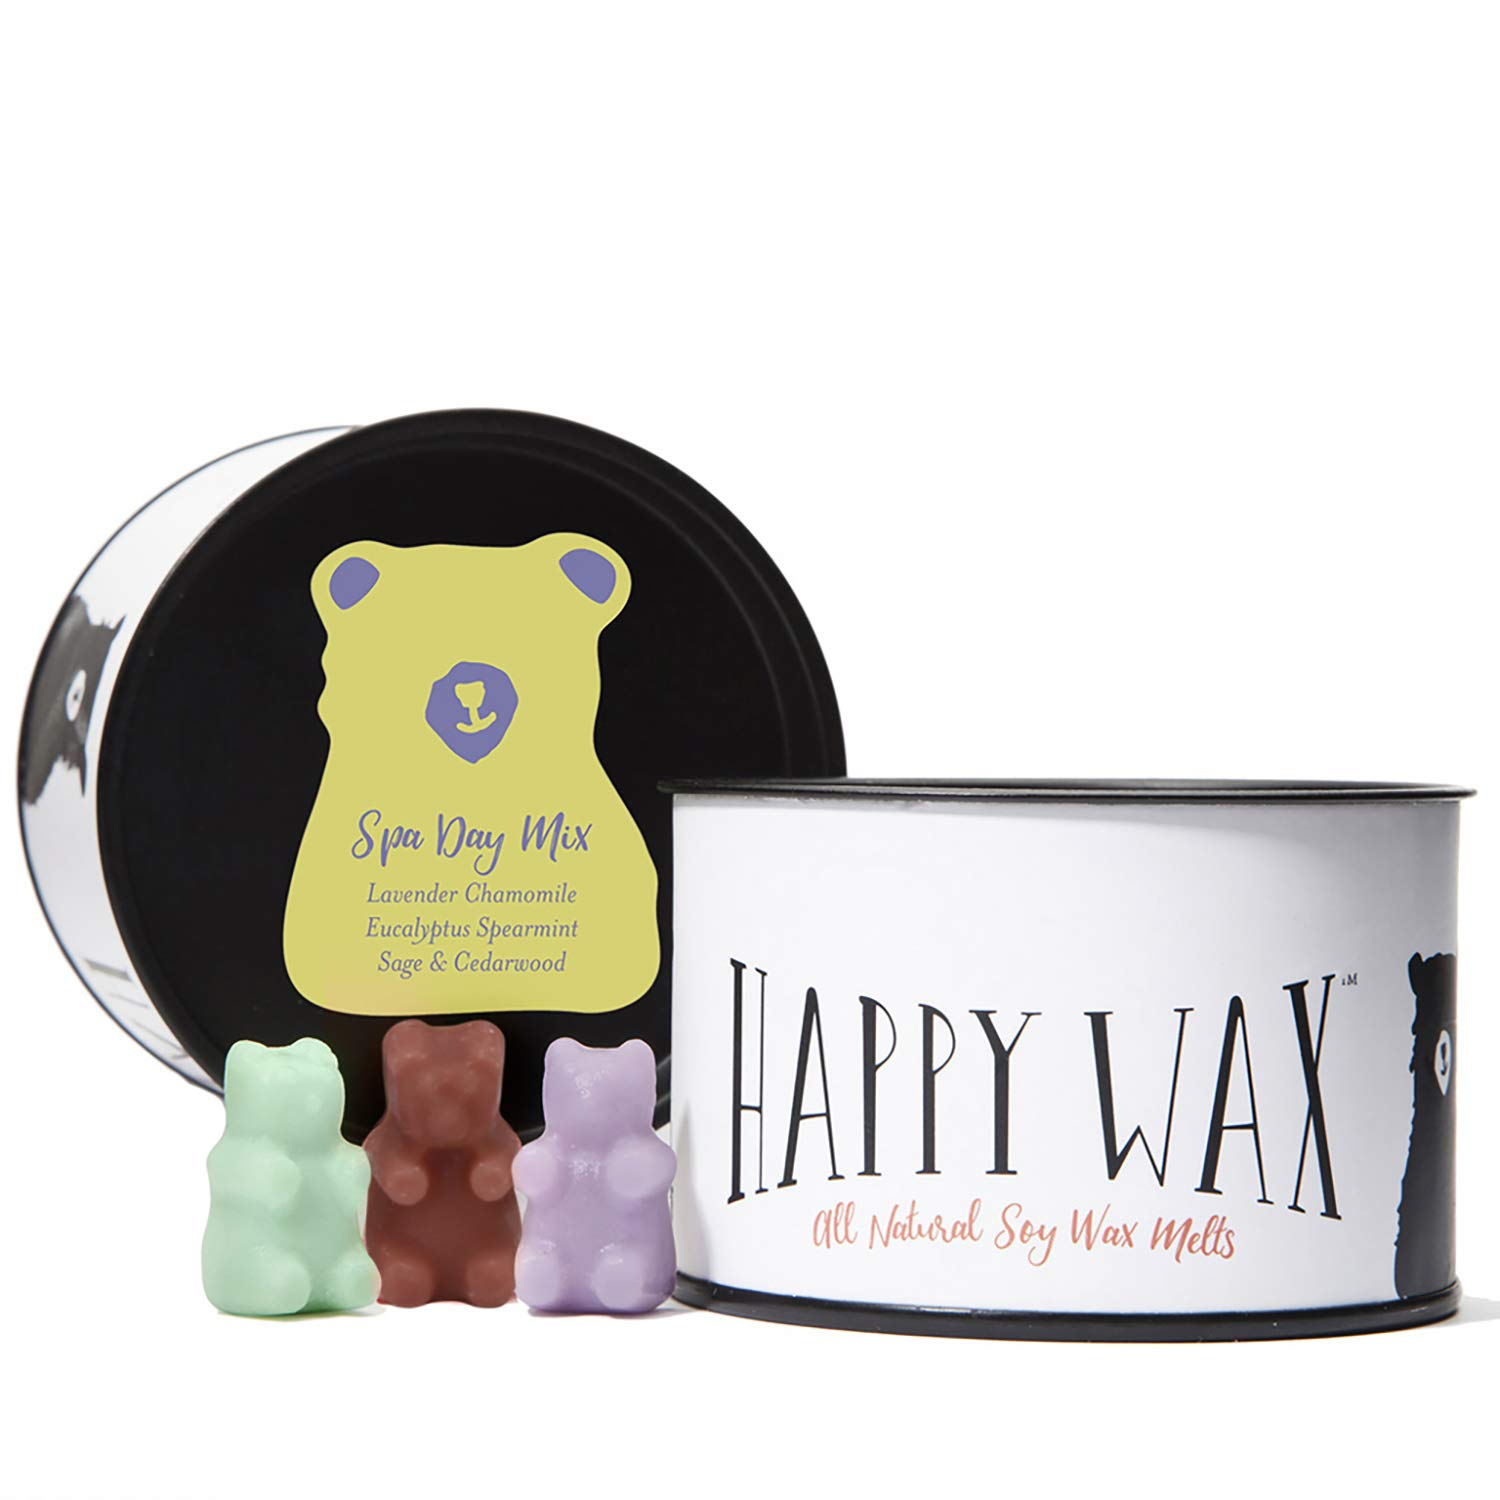 Happy Wax - Four Mixed Tins Wax Melt Gift Set - Includes 3.6 Oz Each of Our Scented Soy Wax Melts in Our Cocktail Mix, Fresh Mix, Citrus Mix, and Spa Day Mix! by Happy Wax (Image #5)